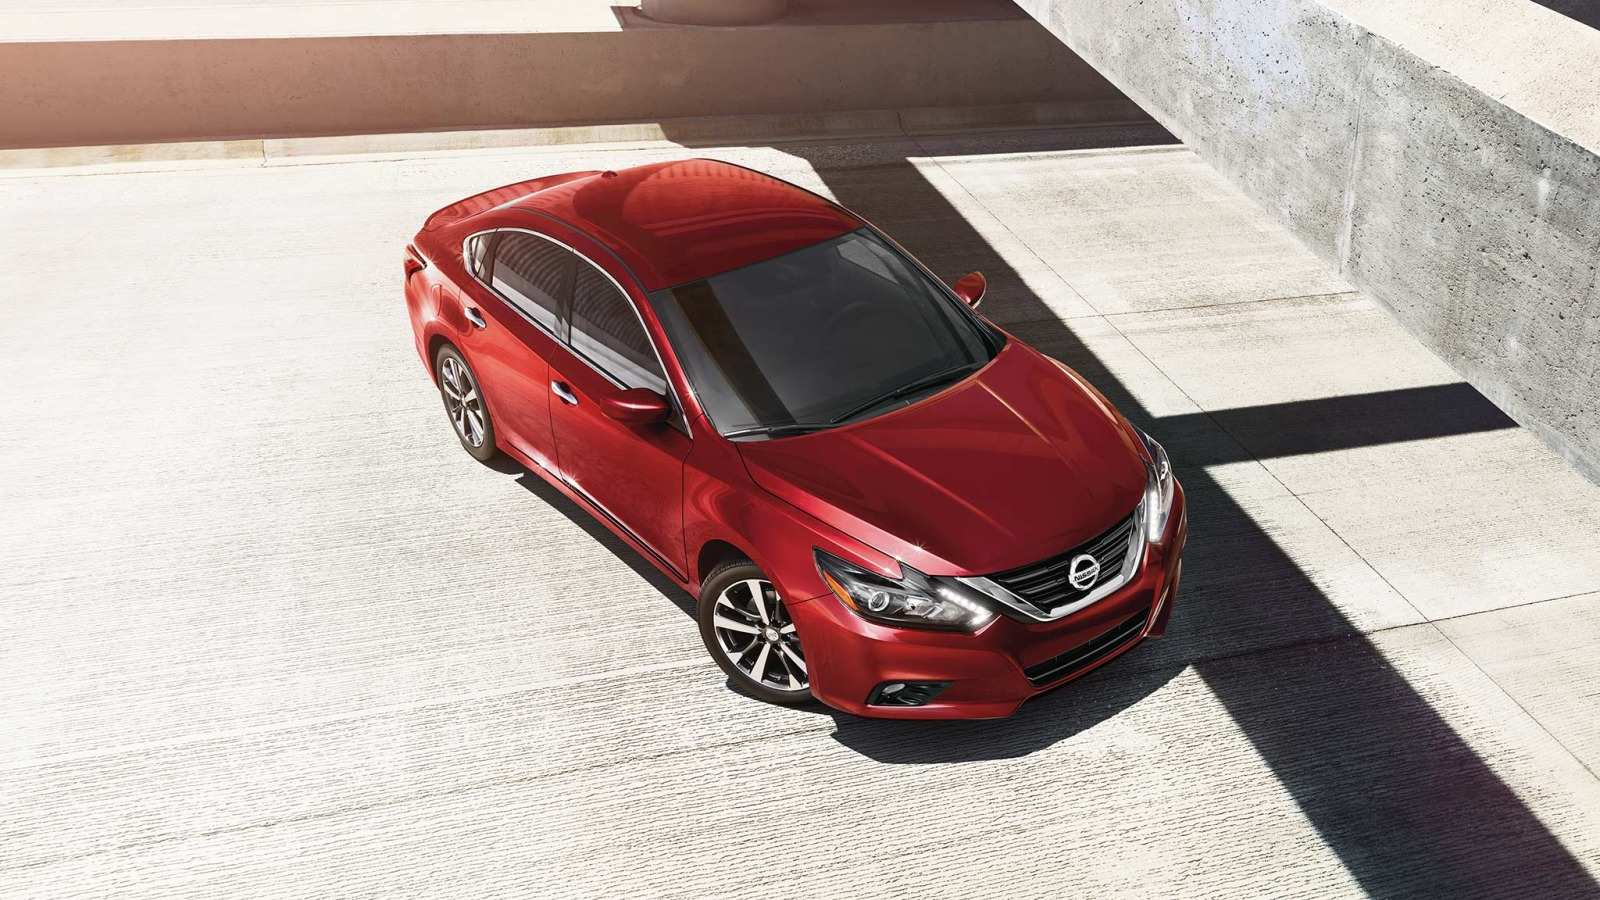 57 All New 2018 Nissan Altima Reviews Images for 2018 Nissan Altima Reviews